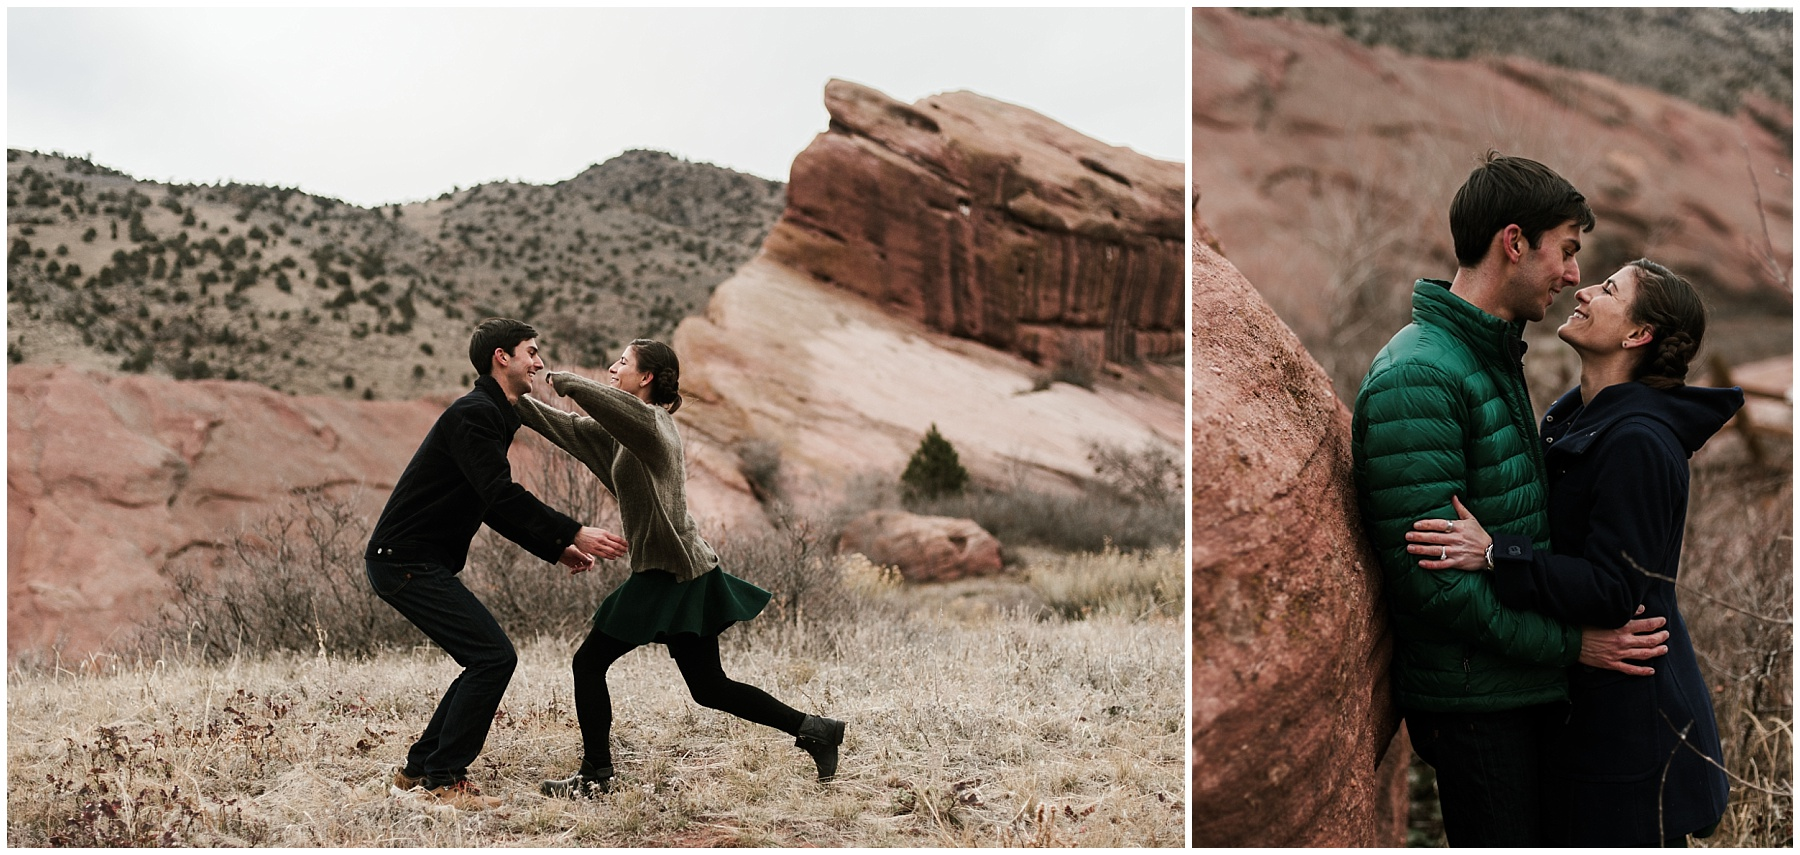 Katesalleyphotography-85_engagement shoot at Red Rocks.jpg